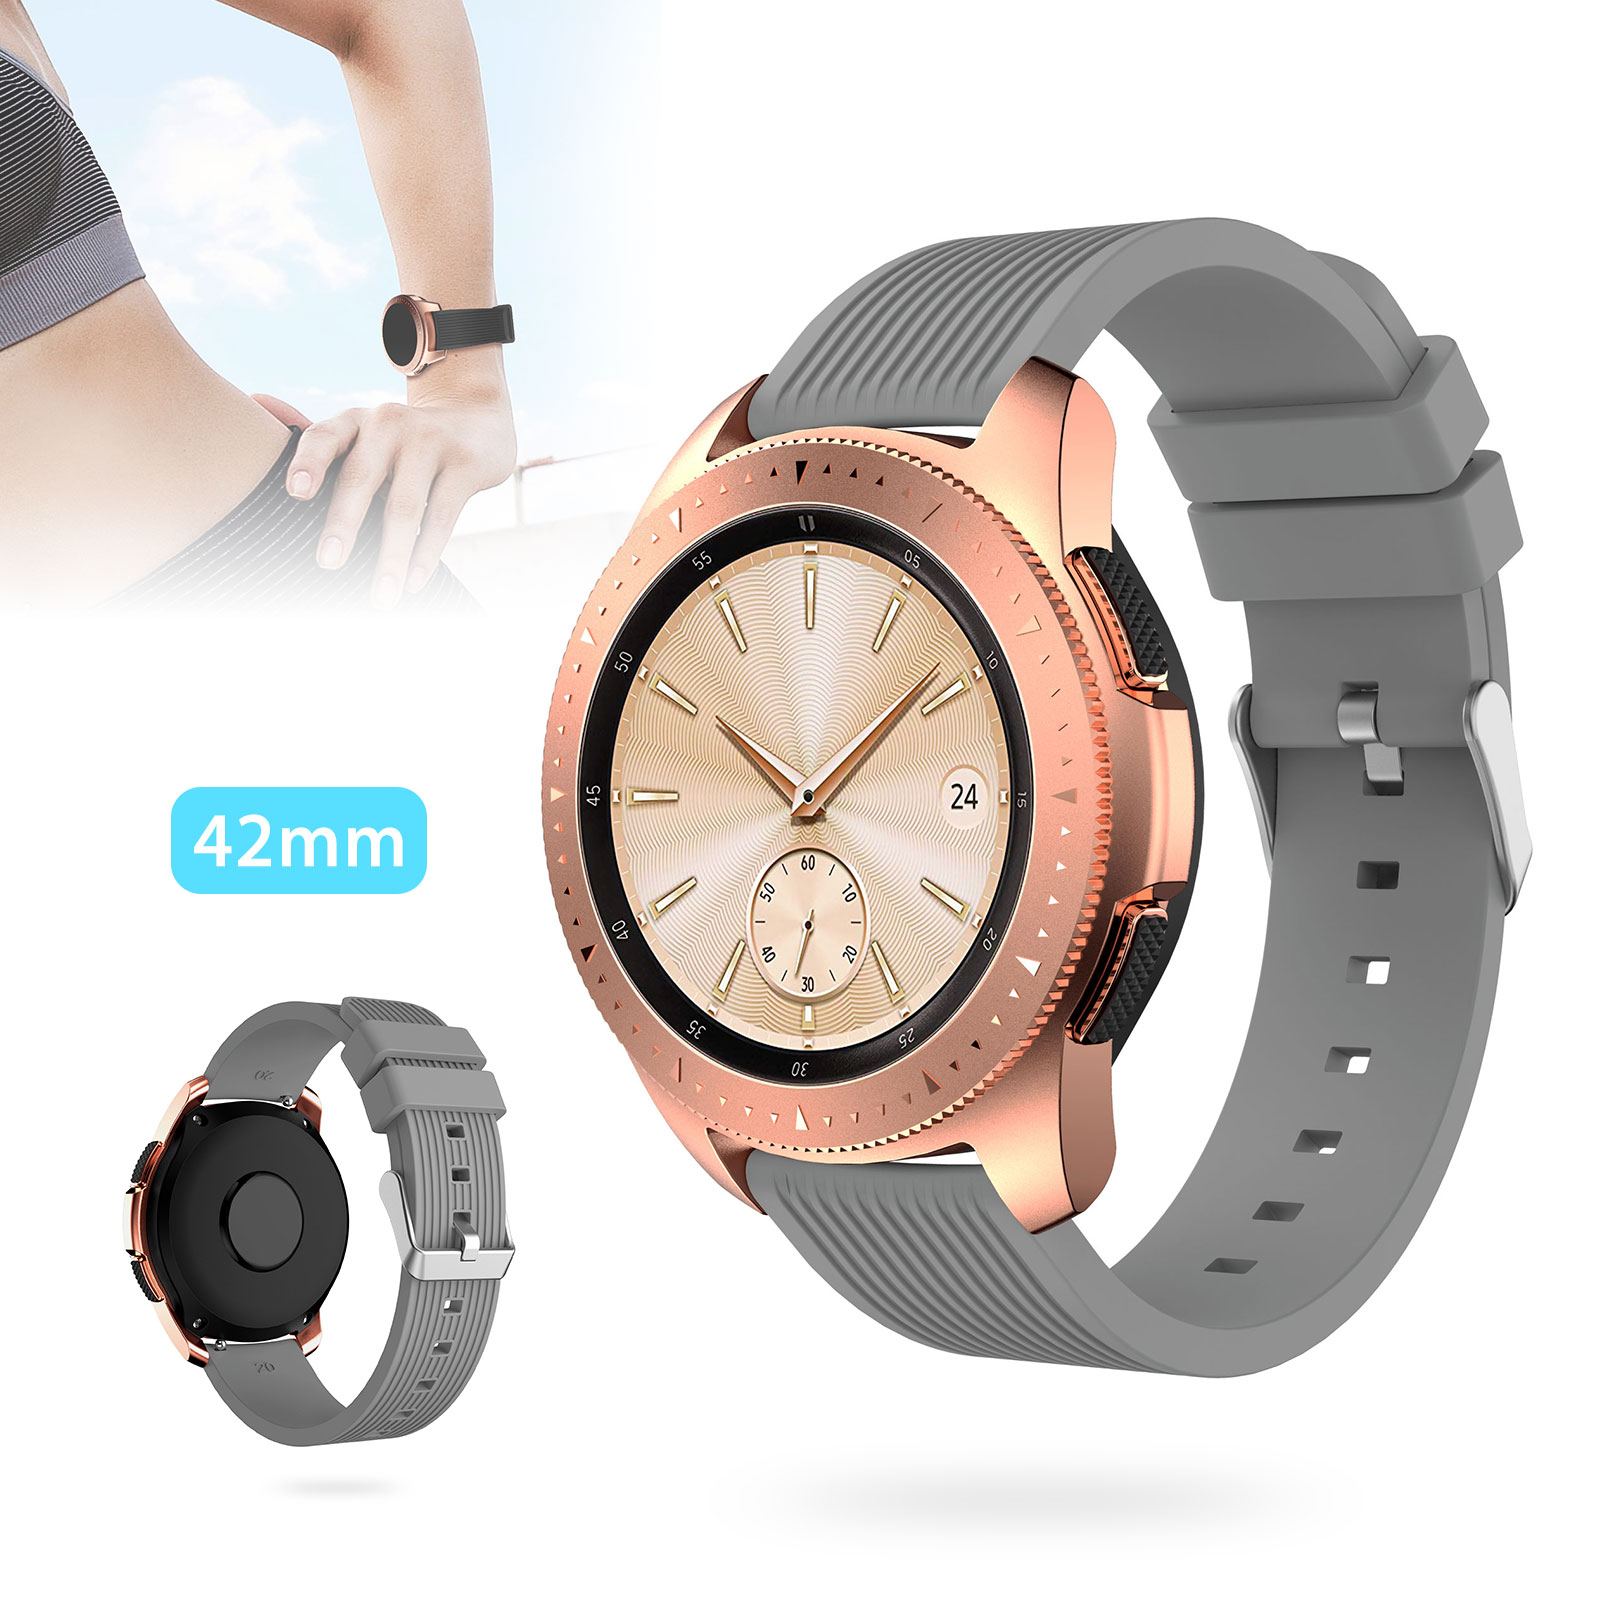 Silicone-Bracelet-Strap-Replacement-Watch-Band-For-Samsung-Galaxy-Watch-42mm thumbnail 14